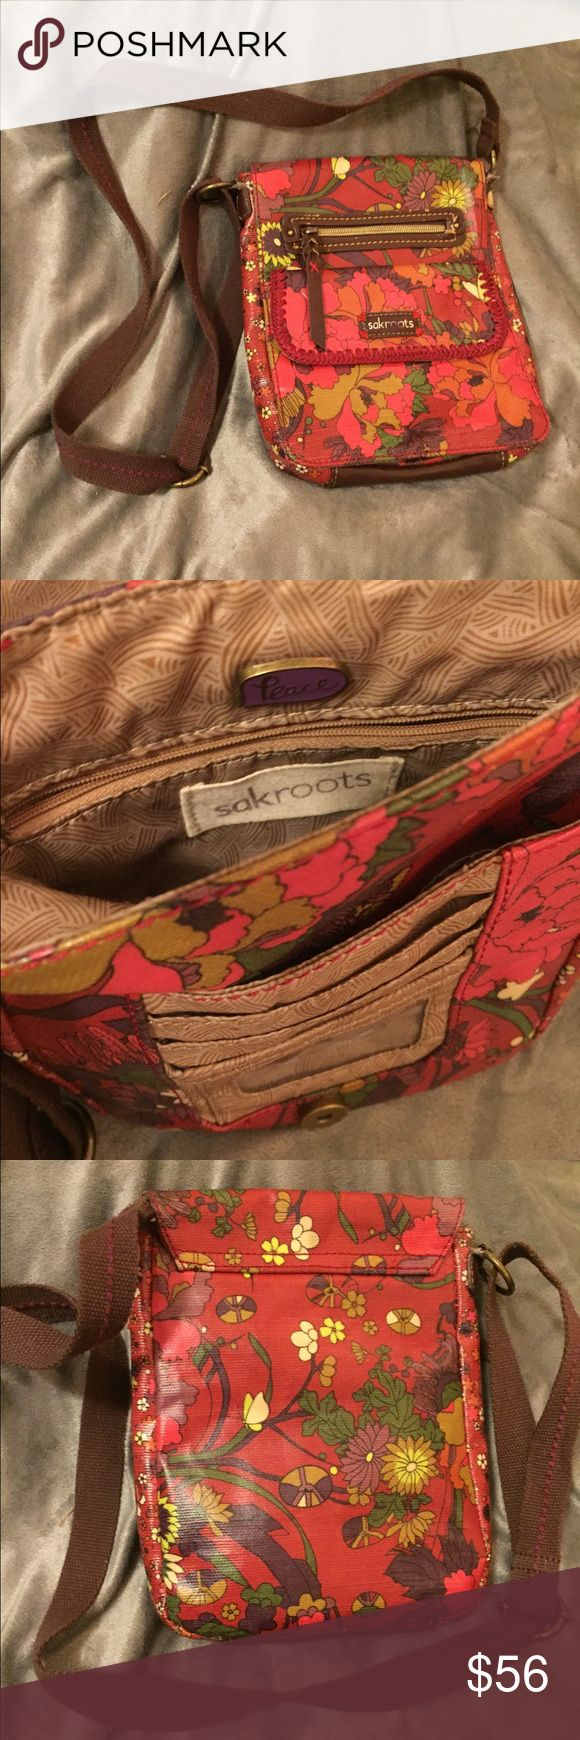 Boho Sakroots Across Body Purse Great weatherproof fabric Good condition, front label looks slightly faded but no rips or tears Sakroots Bags Crossbody Bags